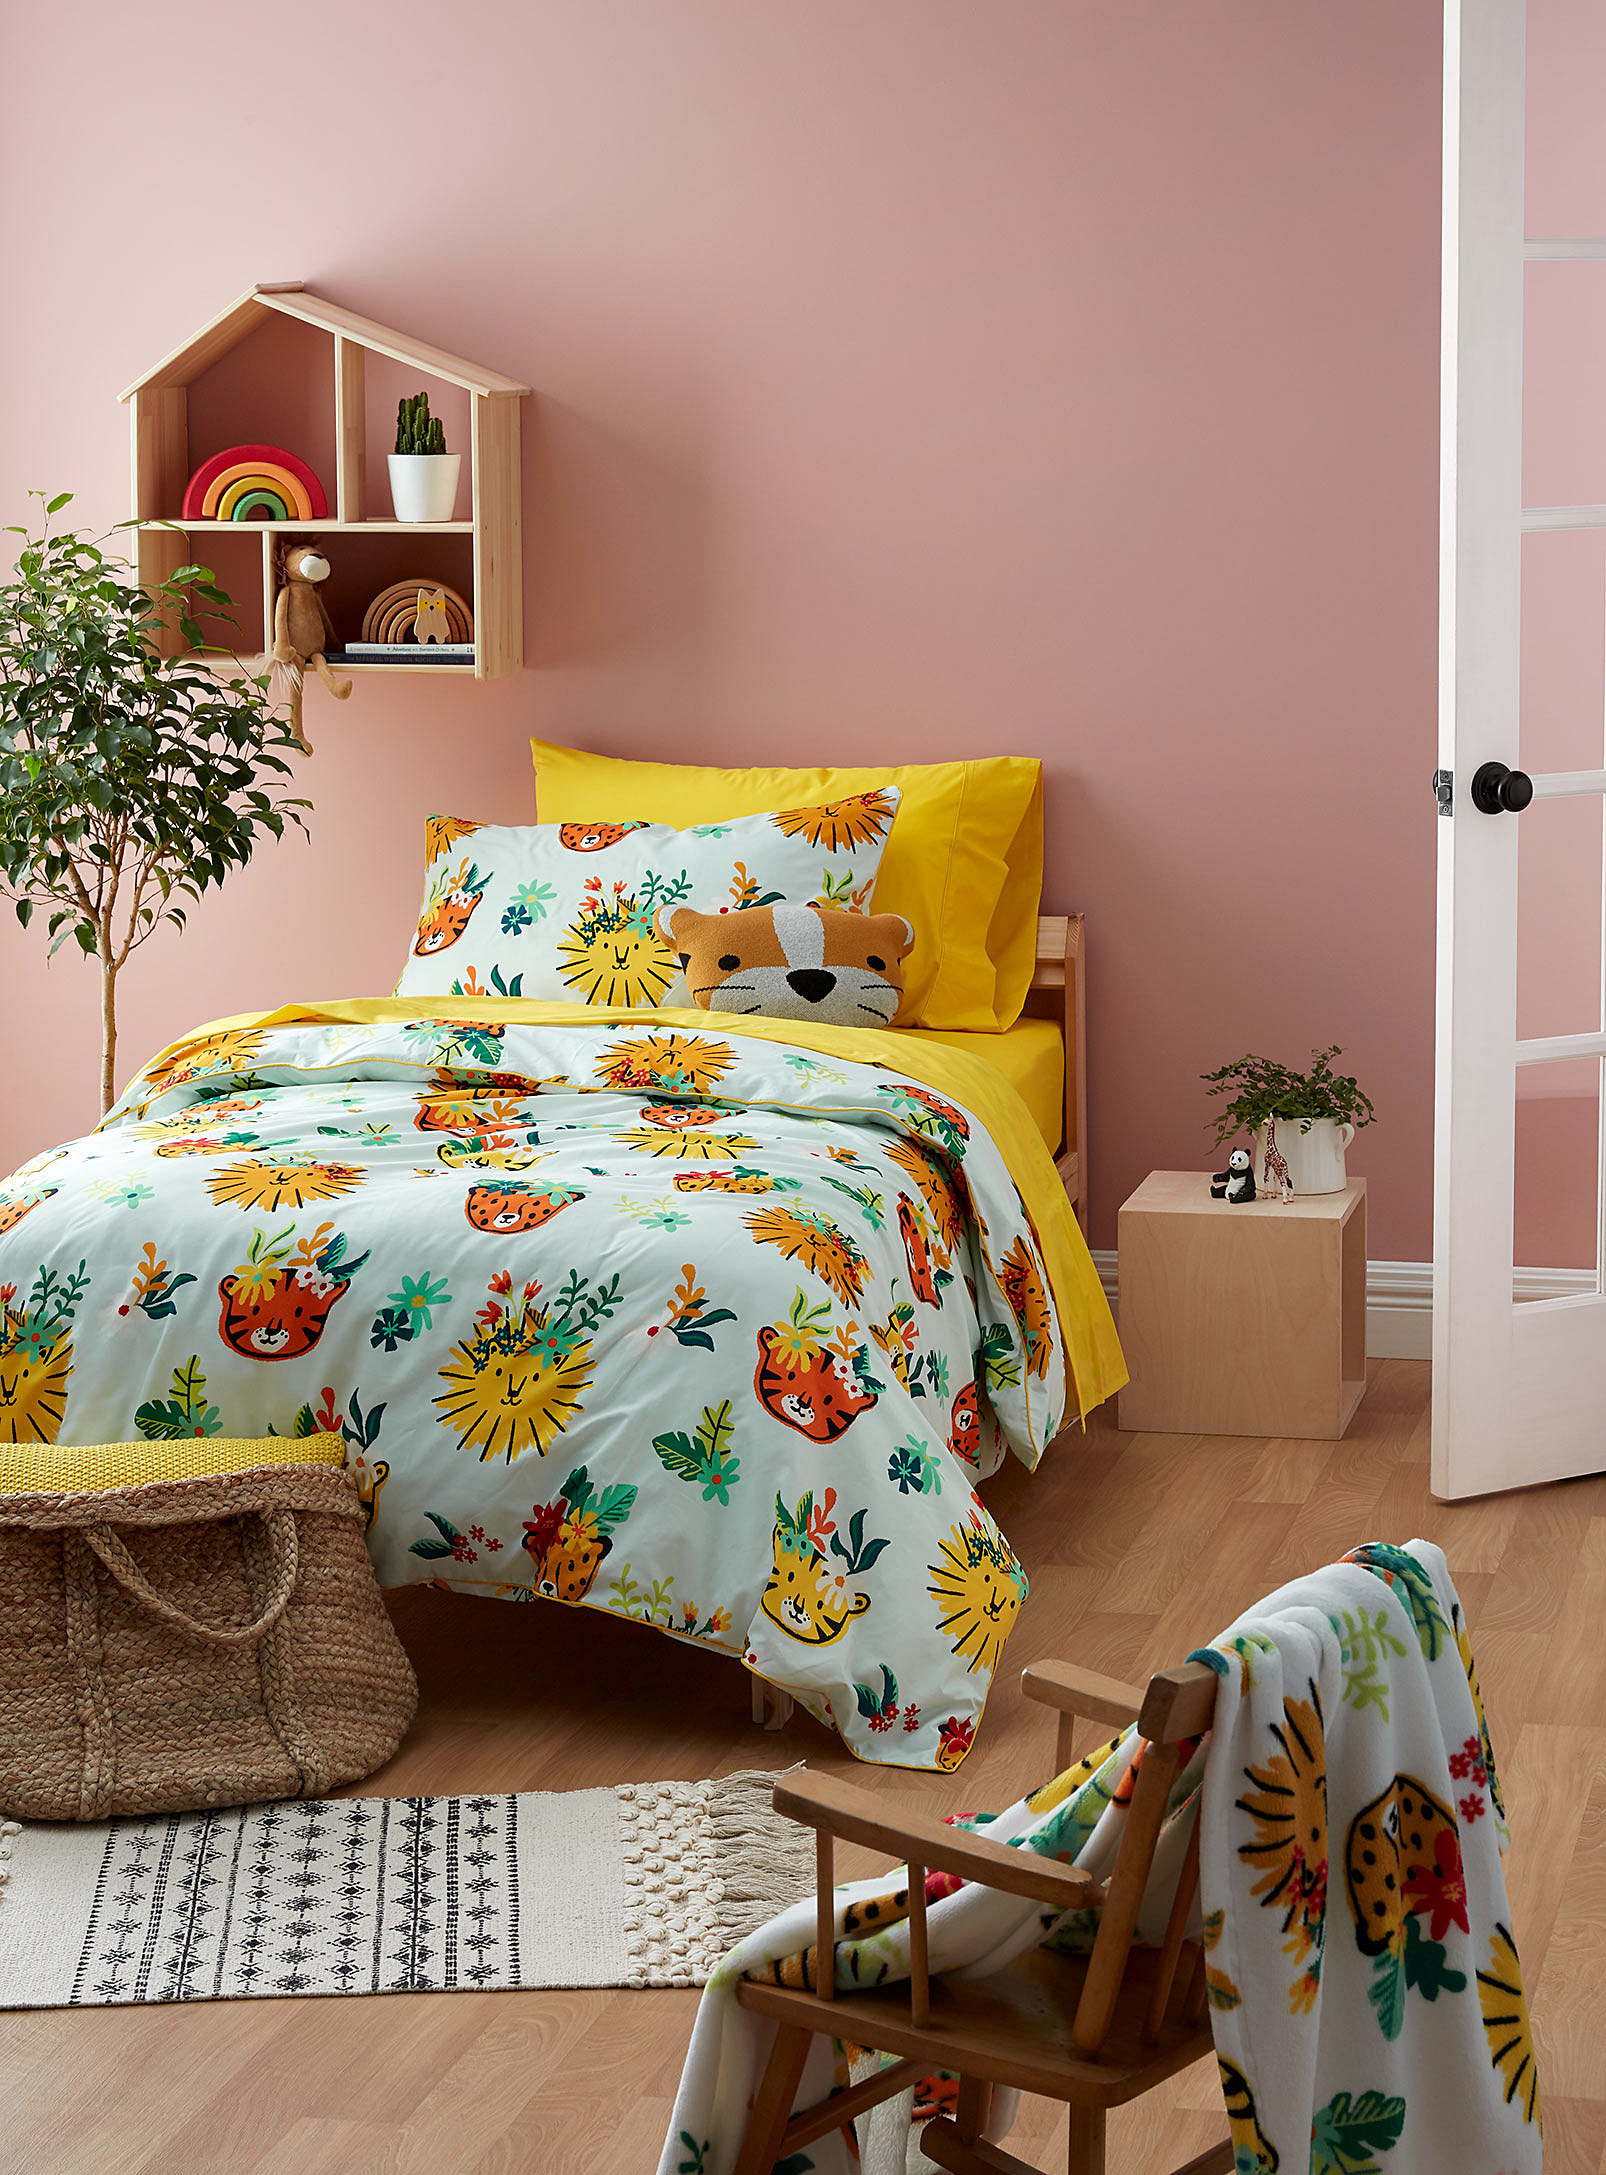 A duvet set with illustrated tiger faces on it